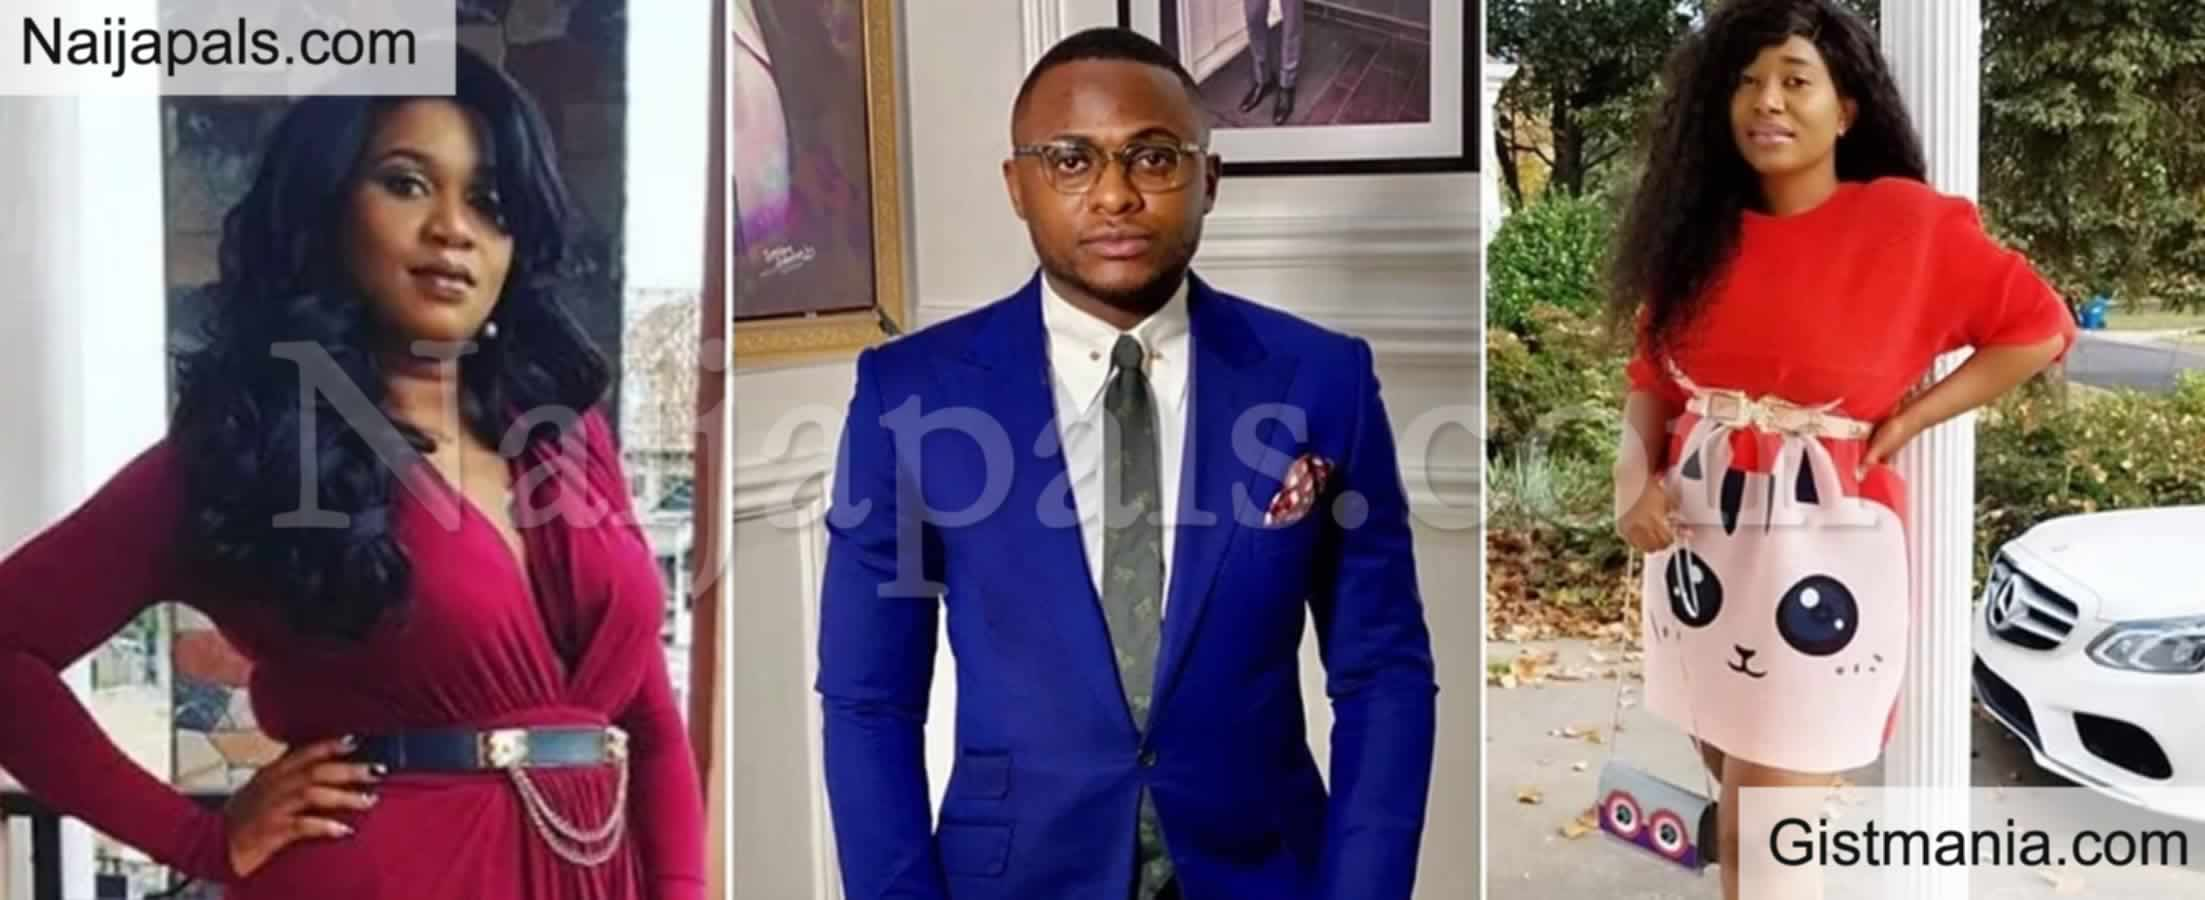 "<img alt='.' class='lazyload' data-src='https://img.gistmania.com/emot/comment.gif' /> <b>""Rather Than Laugh At Me Today, Learn From My Mistakes"" -Ubi Franklin Tells Men</b>"